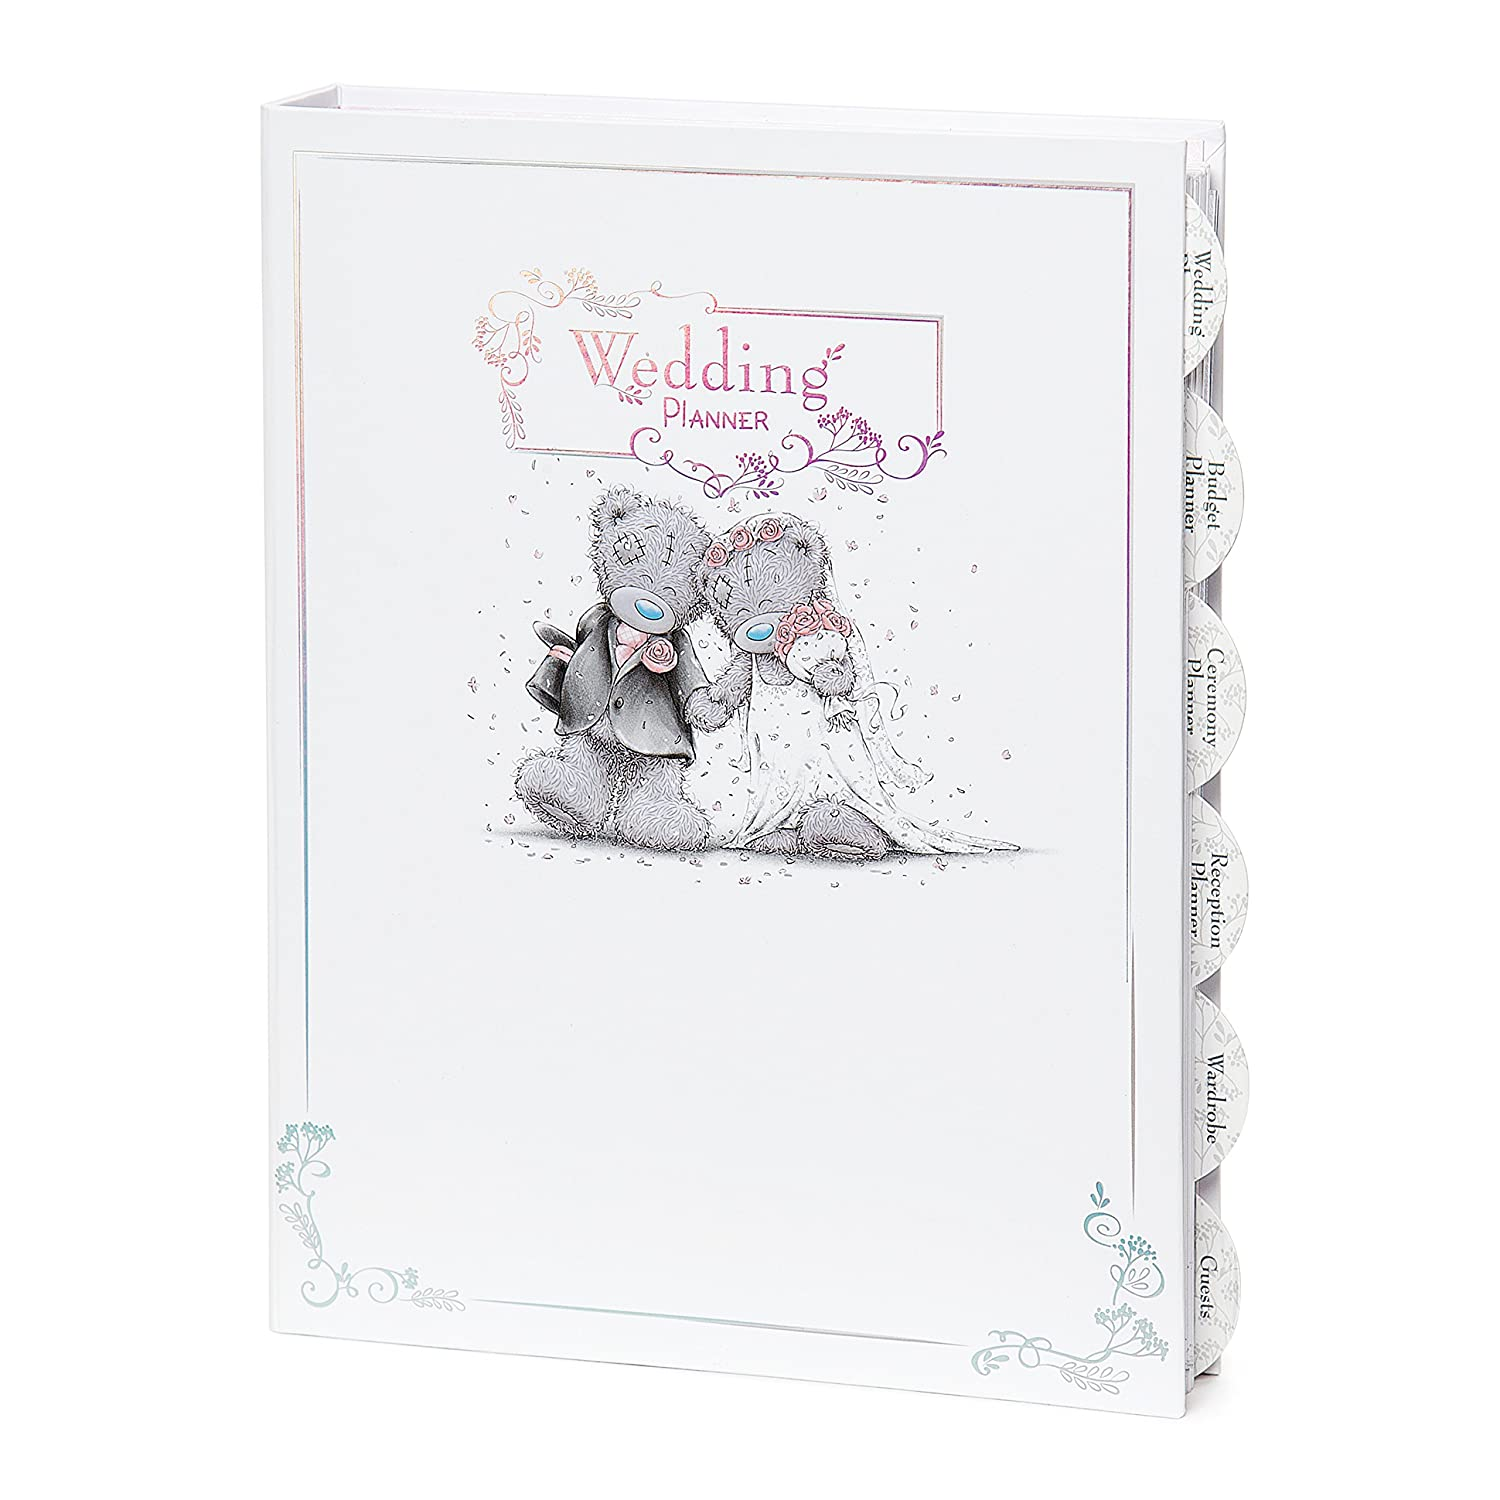 Me to you wedding planner carte blanche greetings ltd g01q6584 box contains m4hsunfo